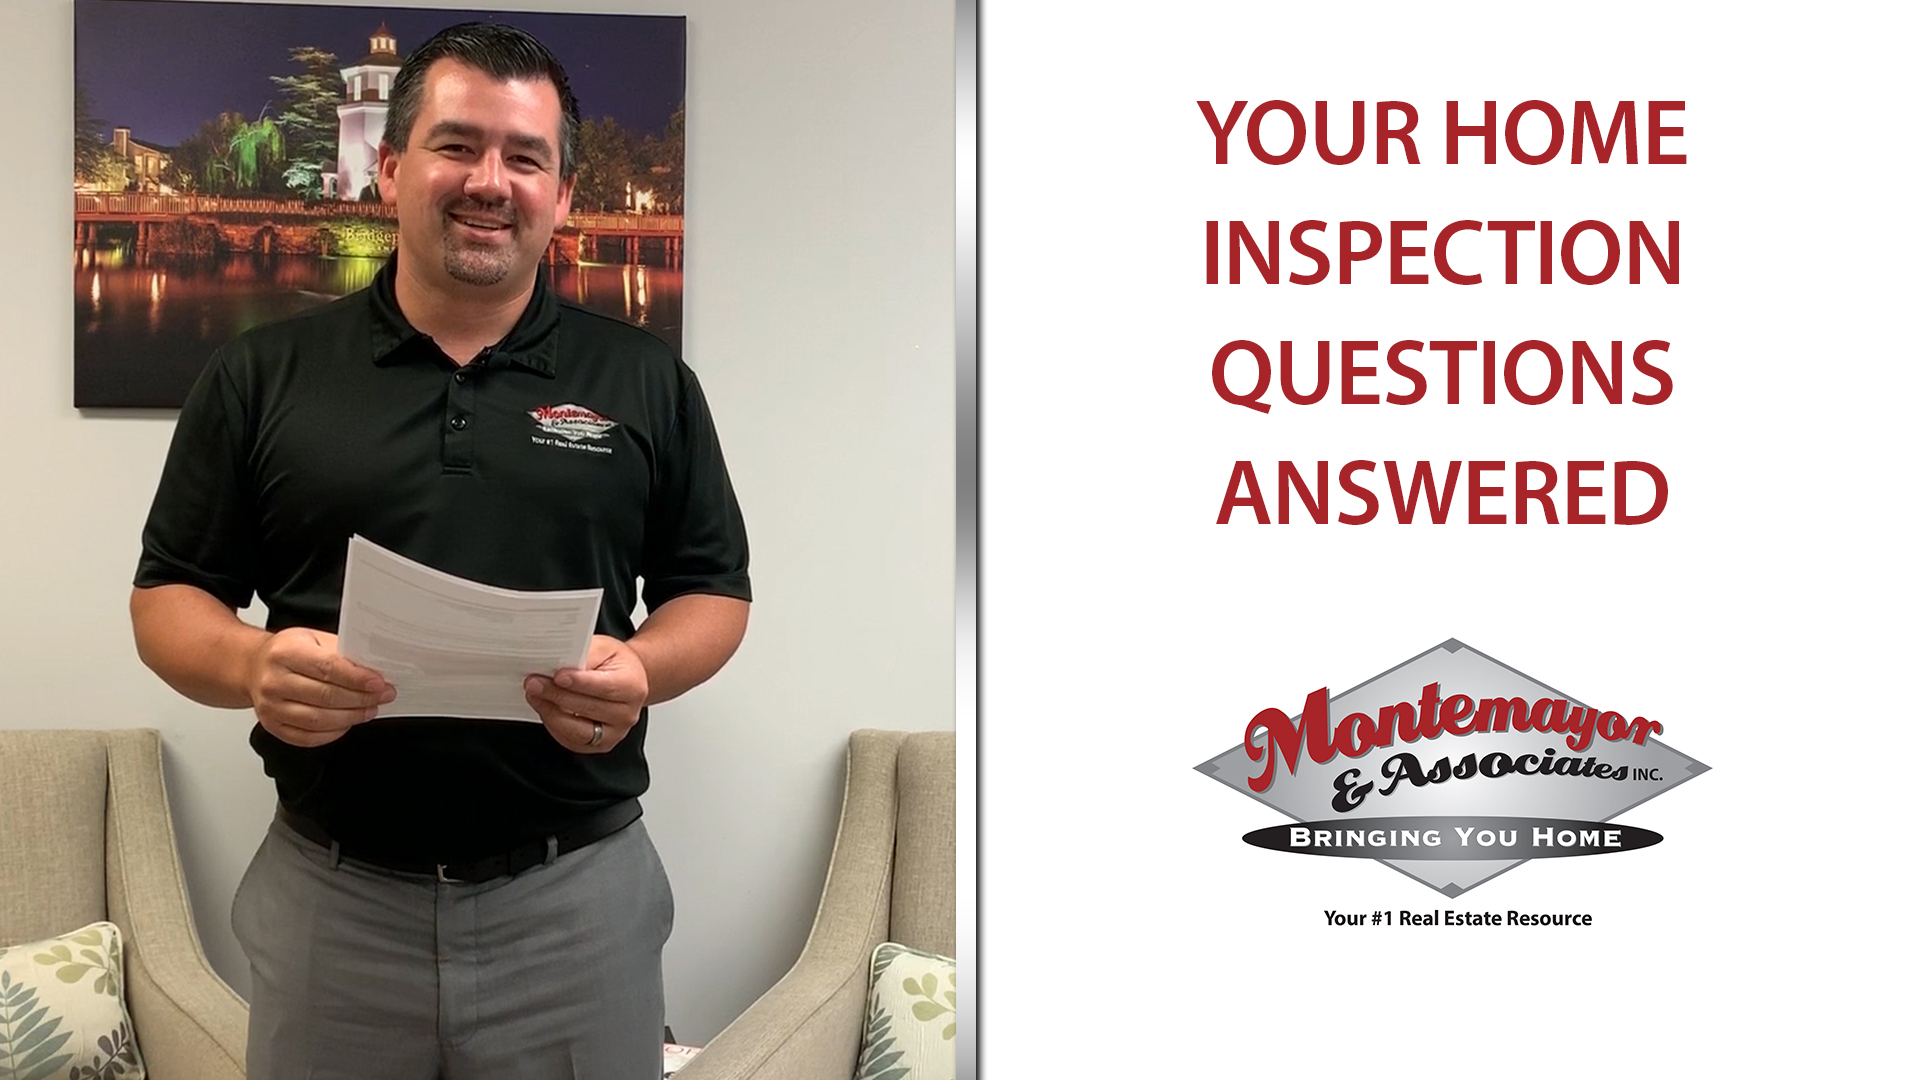 Expert Insight on 2 Common Home Inspection Questions